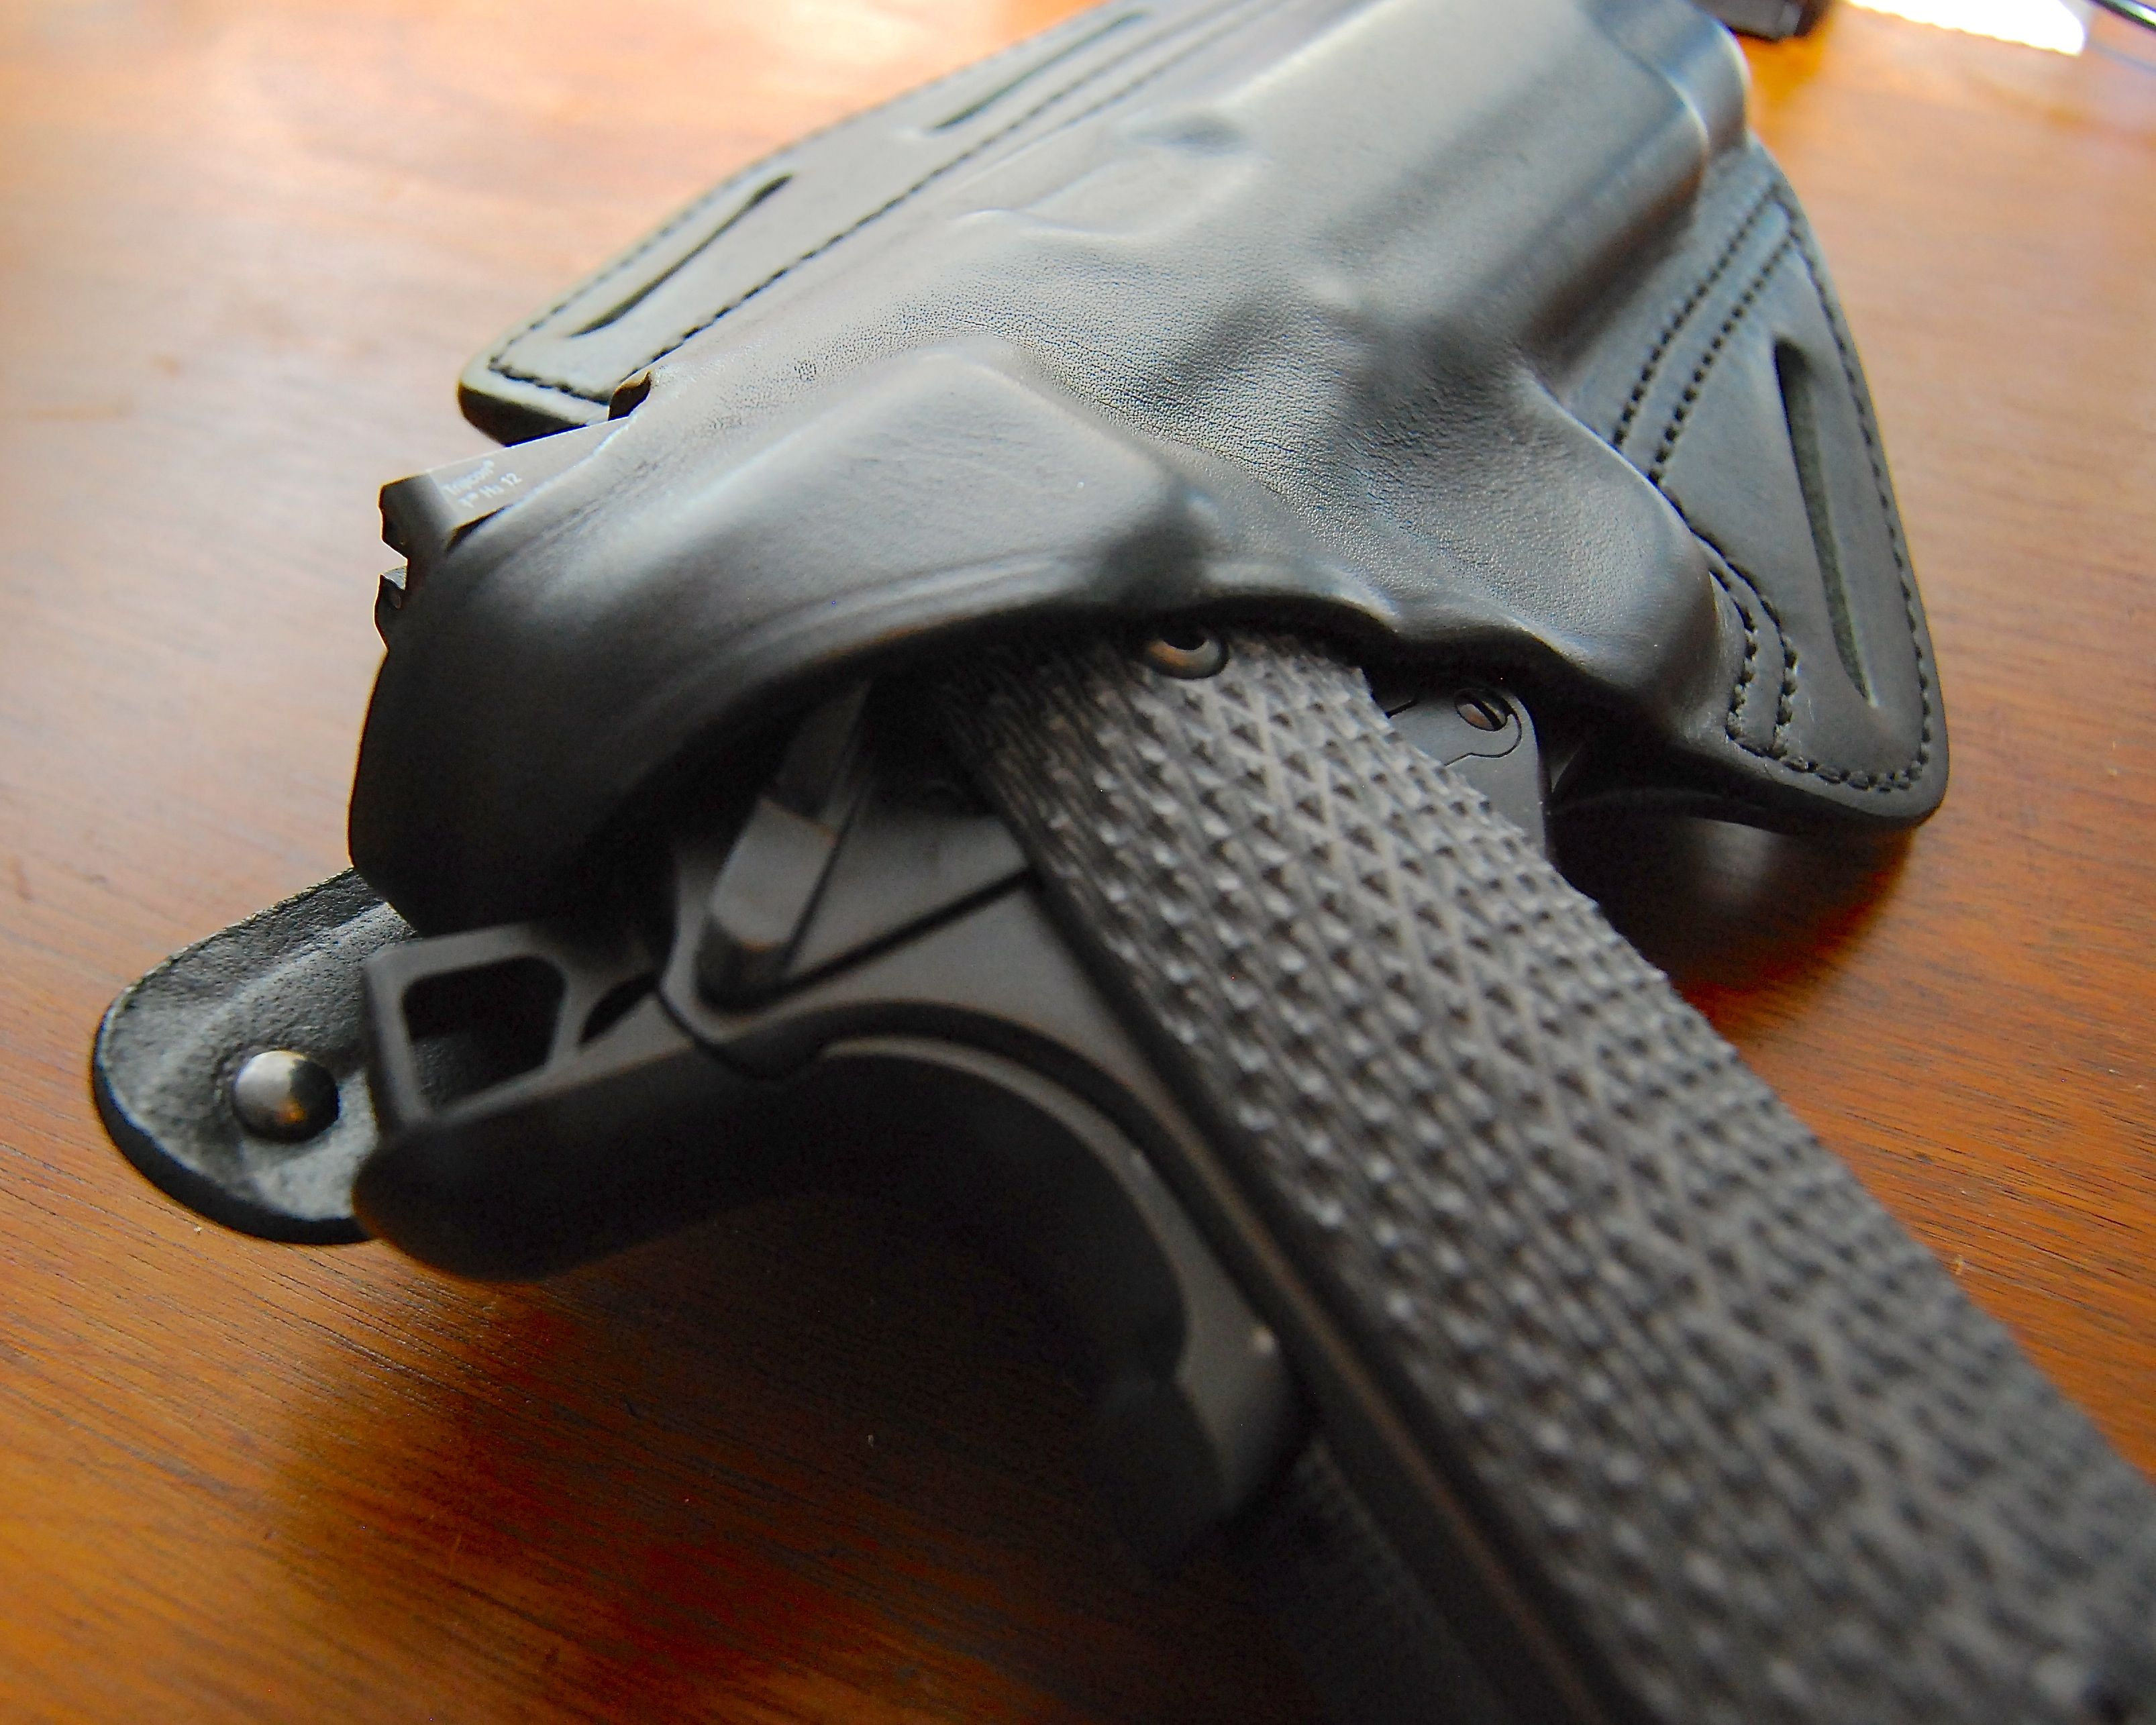 98 best armas 1911 images on pinterest firearms hand guns and